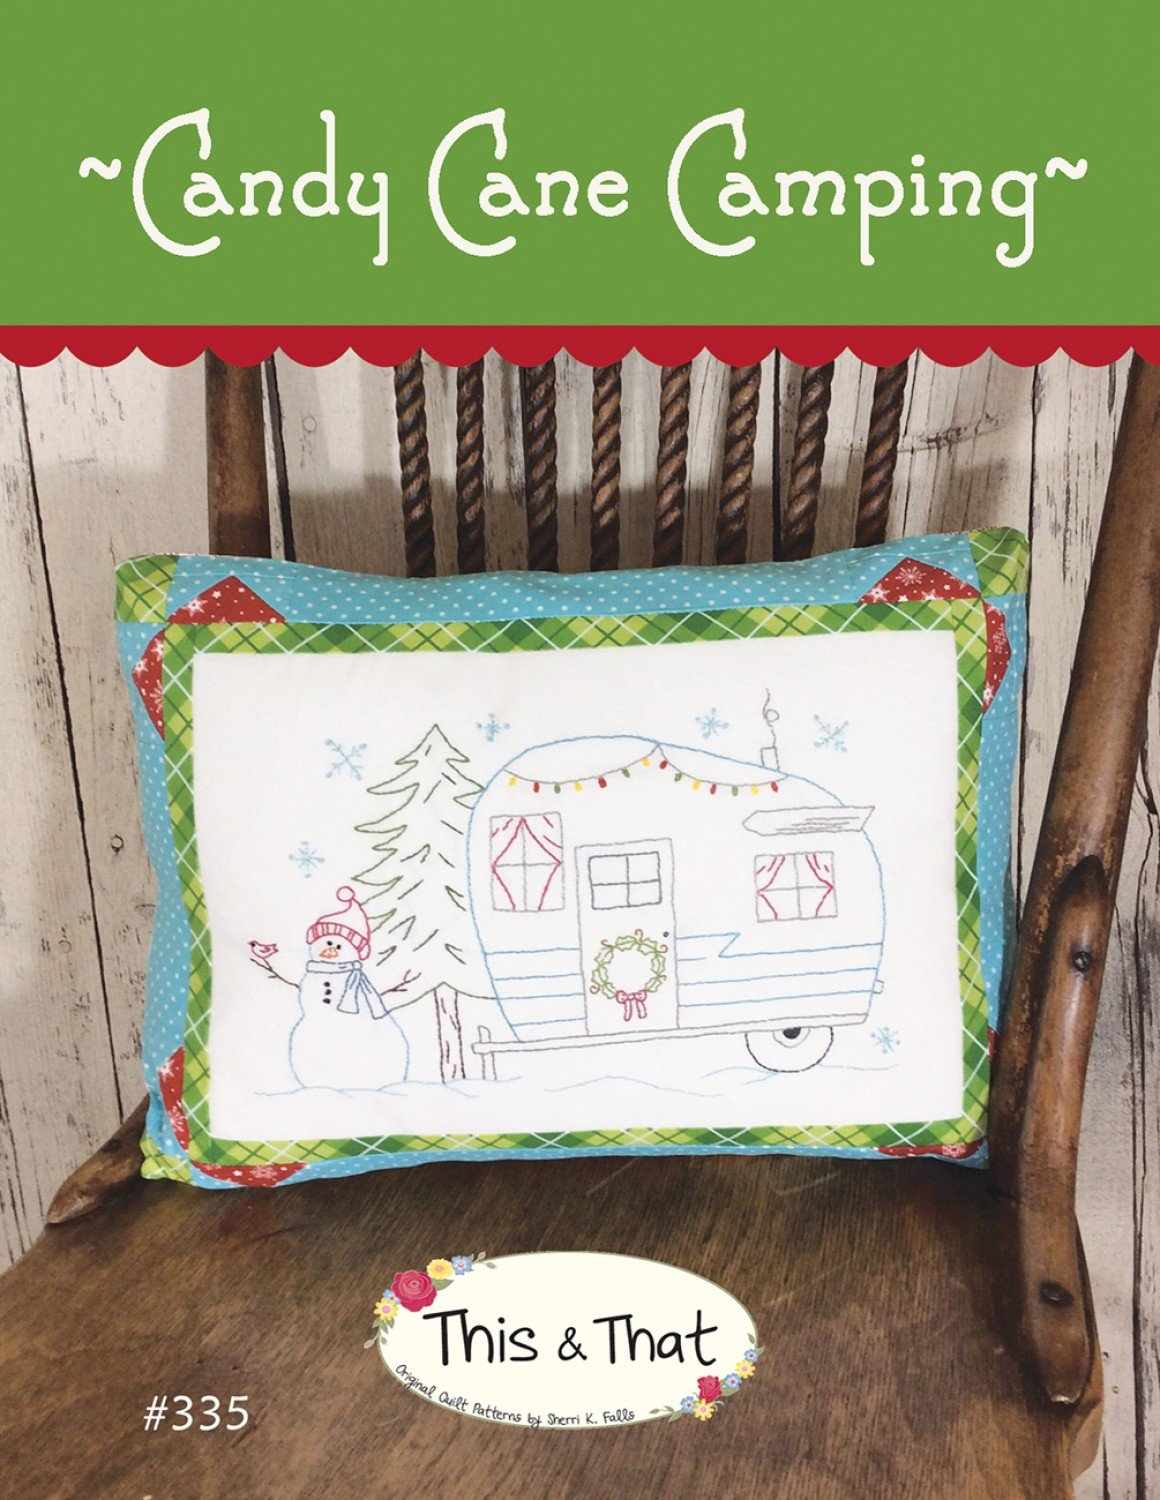 Candy Cane Camping